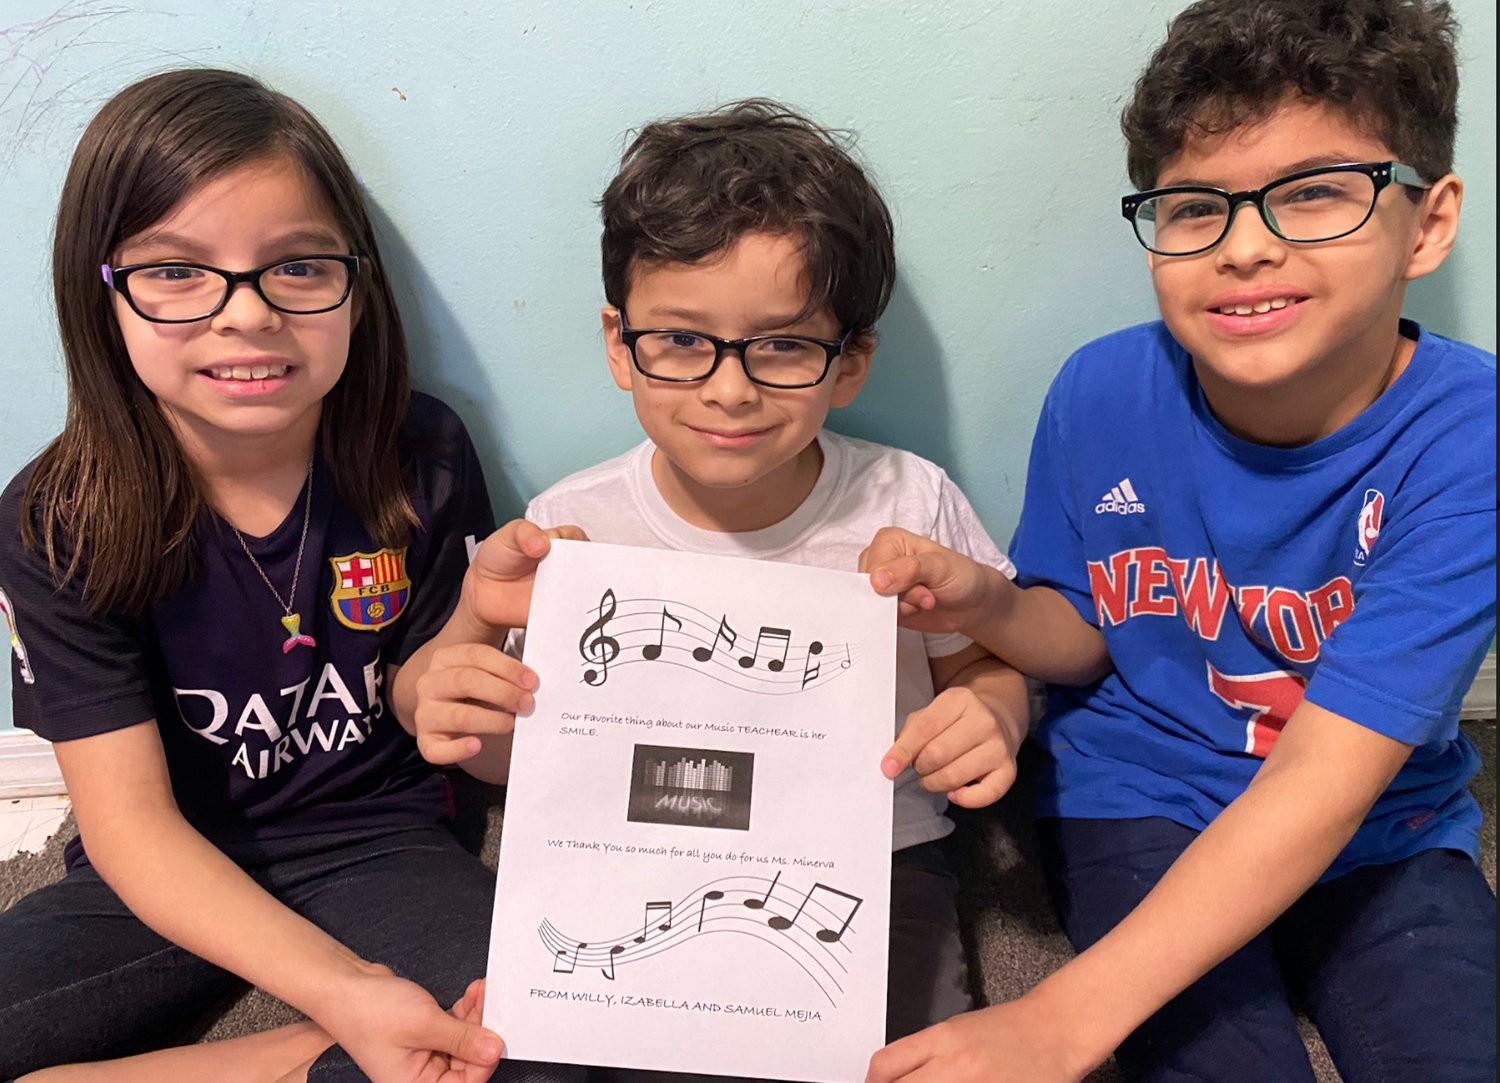 Chestnut Street School students and siblings Isabelle, Sam and Willy Mejia shared their favorite thing about their music teacher Diana Minerva during the school's Teacher Appreciation Week.